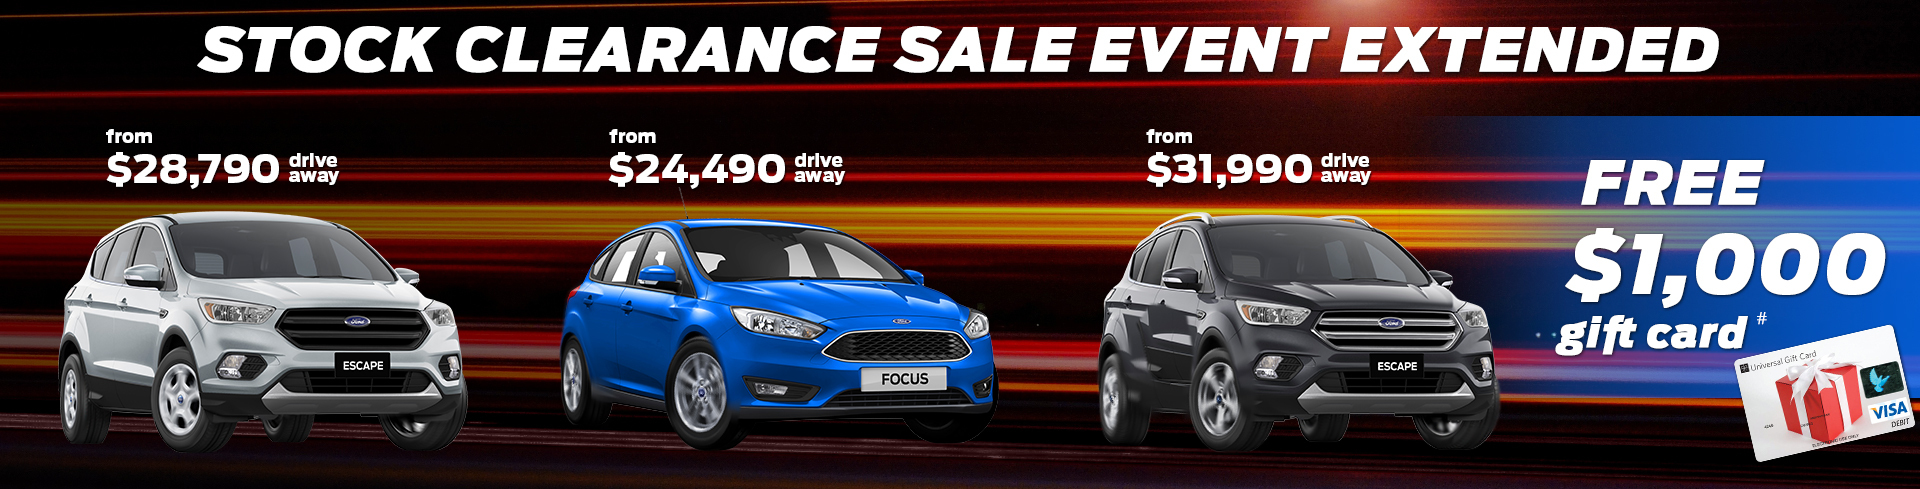 Peter Warren Ford Stock Clearance Sale Event